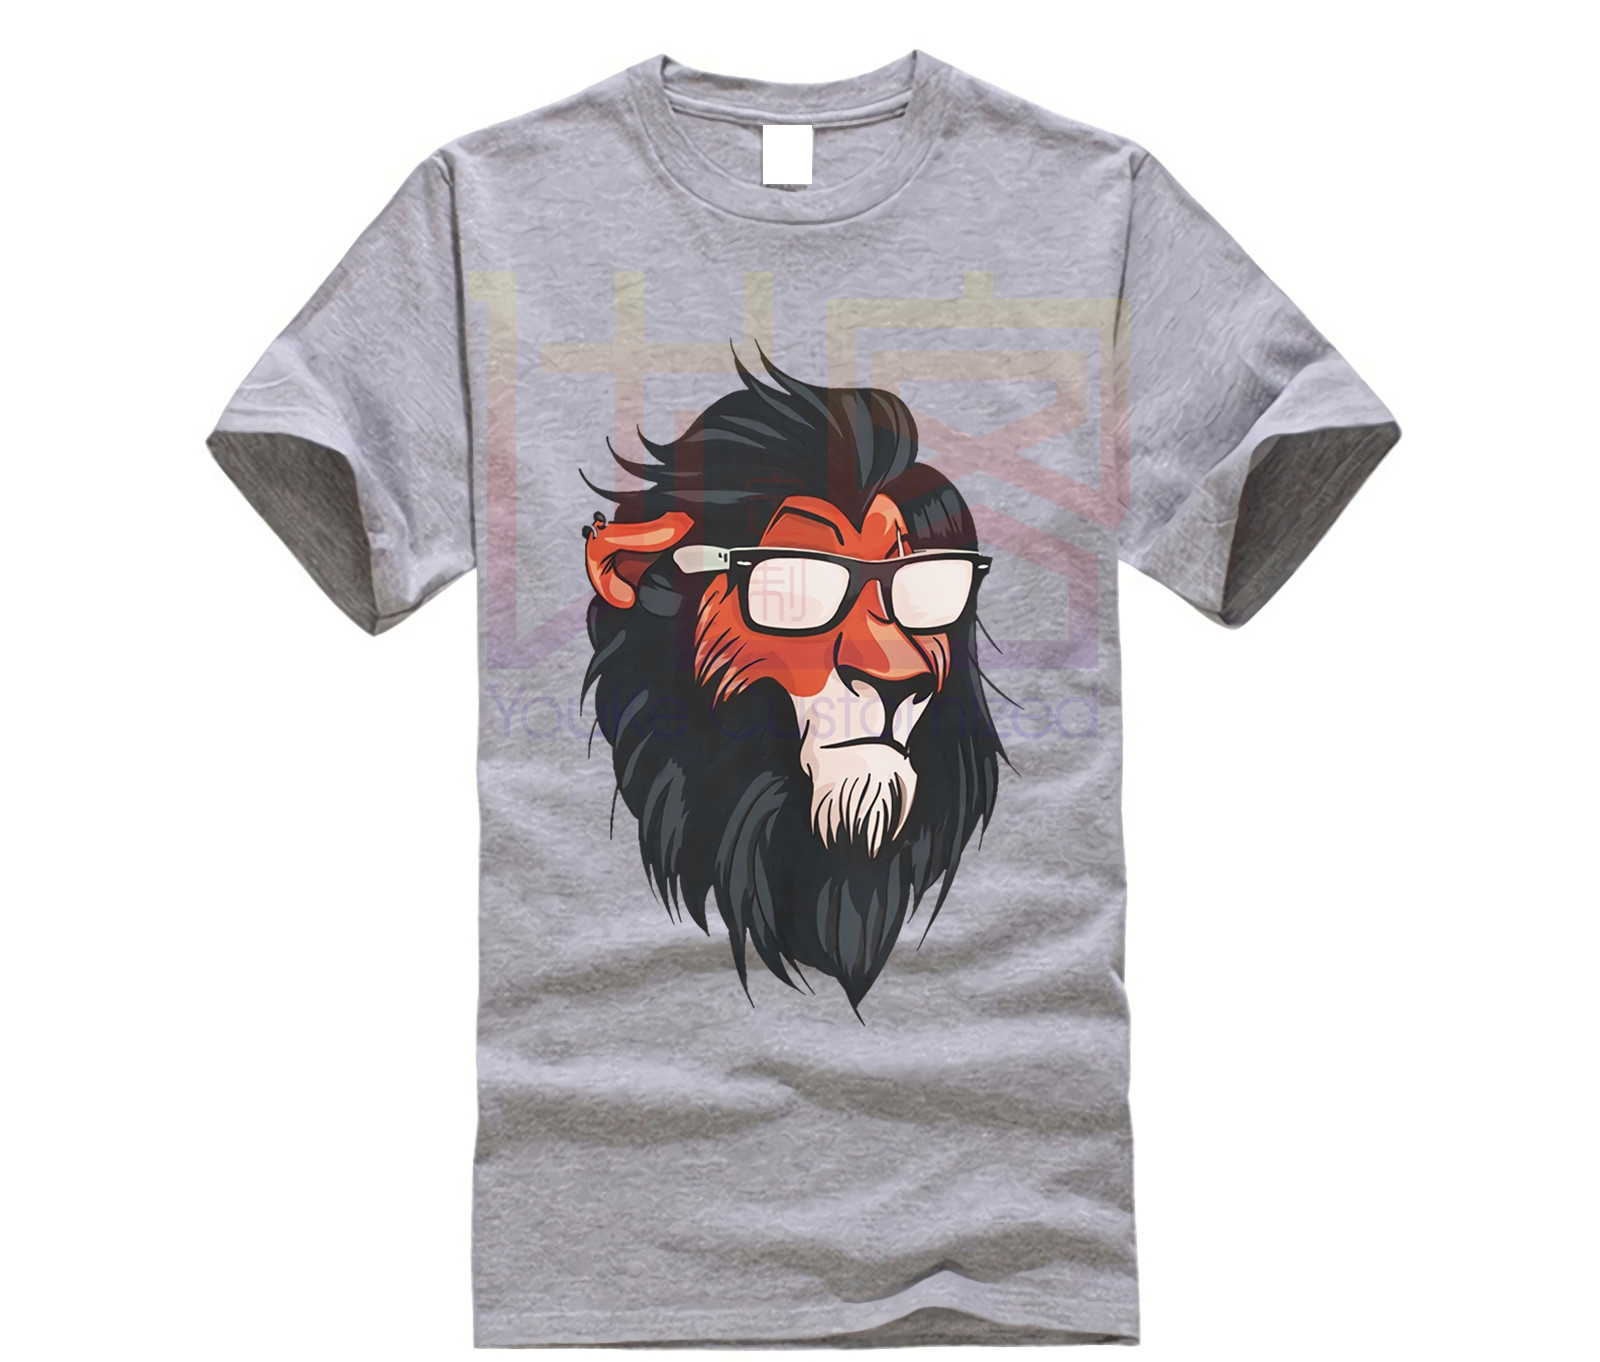 Lion King Scar In Glasses T-Shirt, Funny Disney Shirt, All Sizes Newest 2019 Summer Men T-Shirt Fashion O Neck Cotton Tees Tops